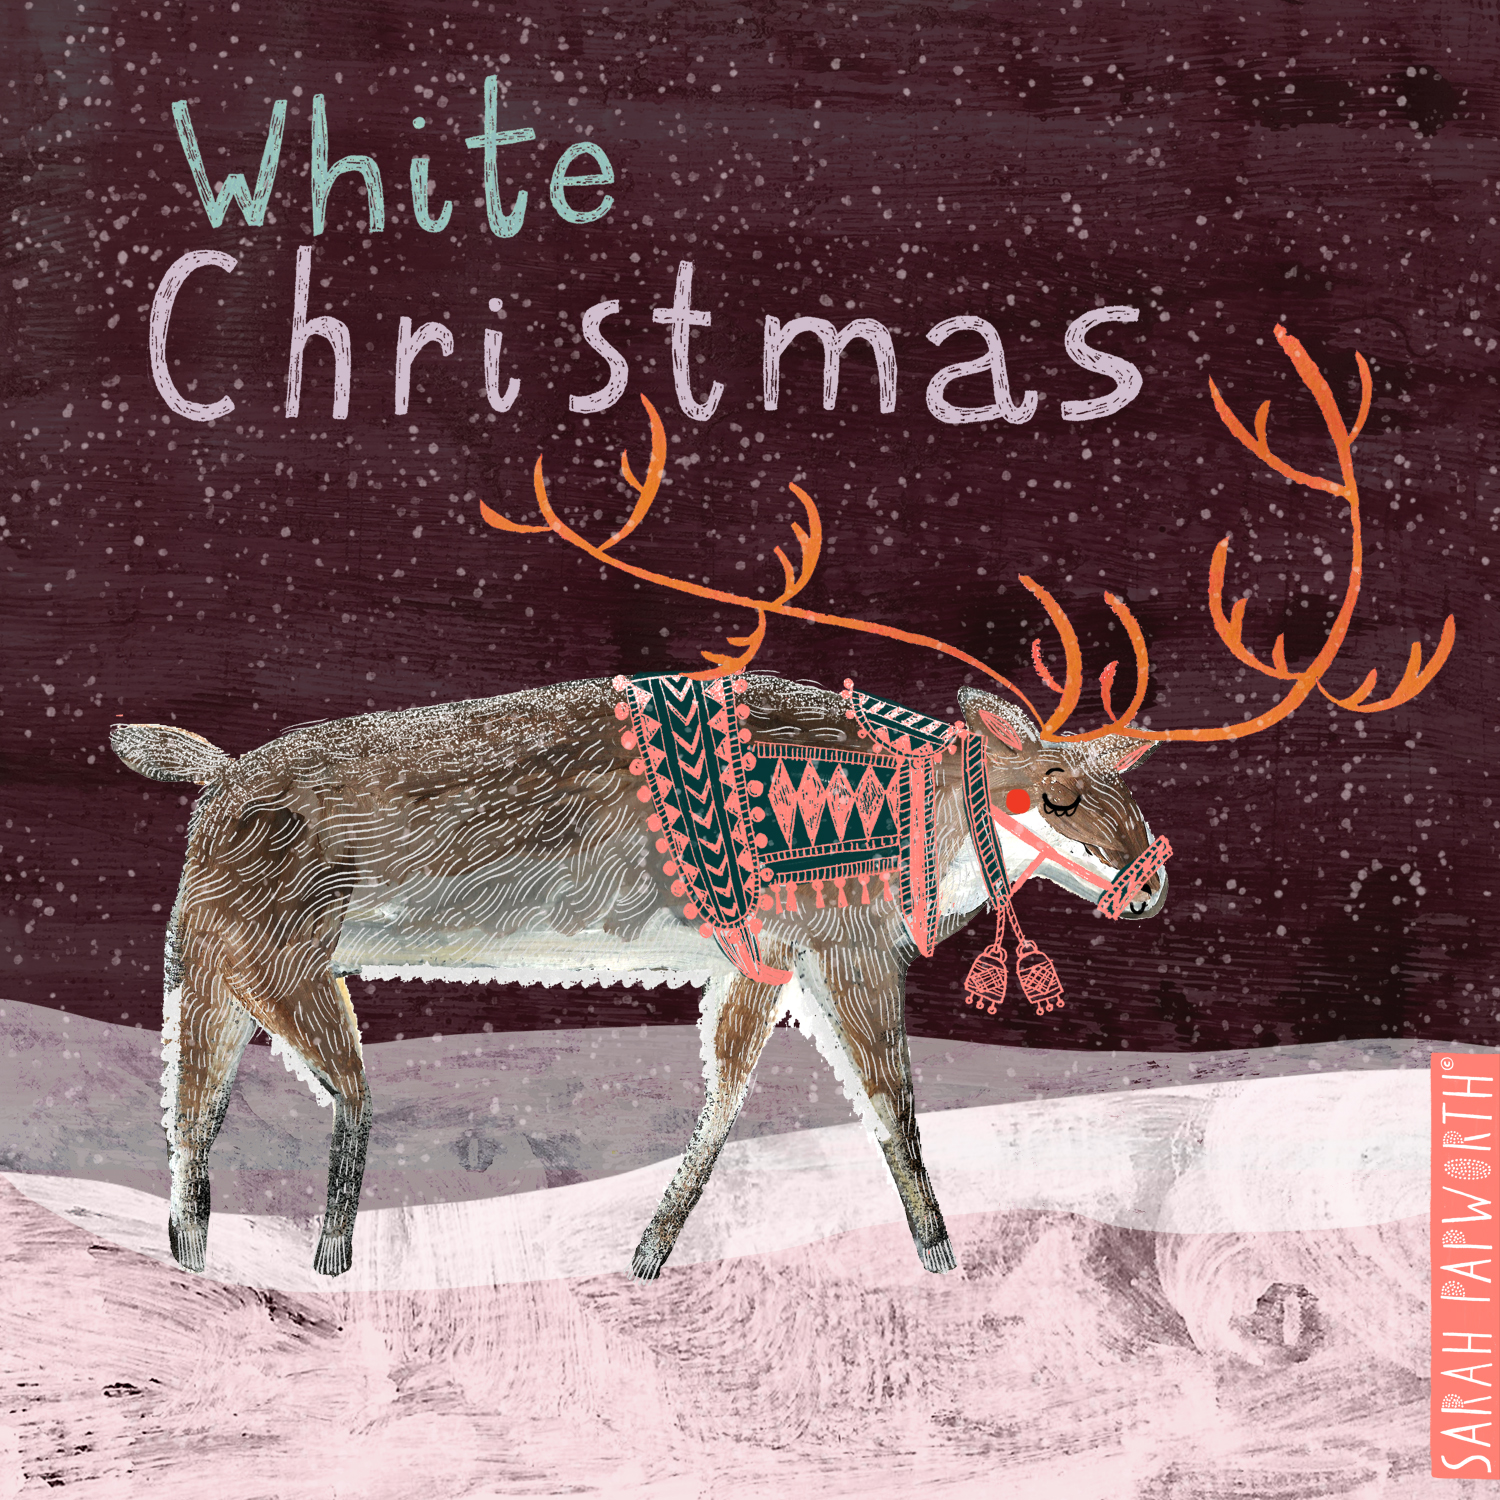 reindeer christmas design greeting card illustration sarah papworth.jpg